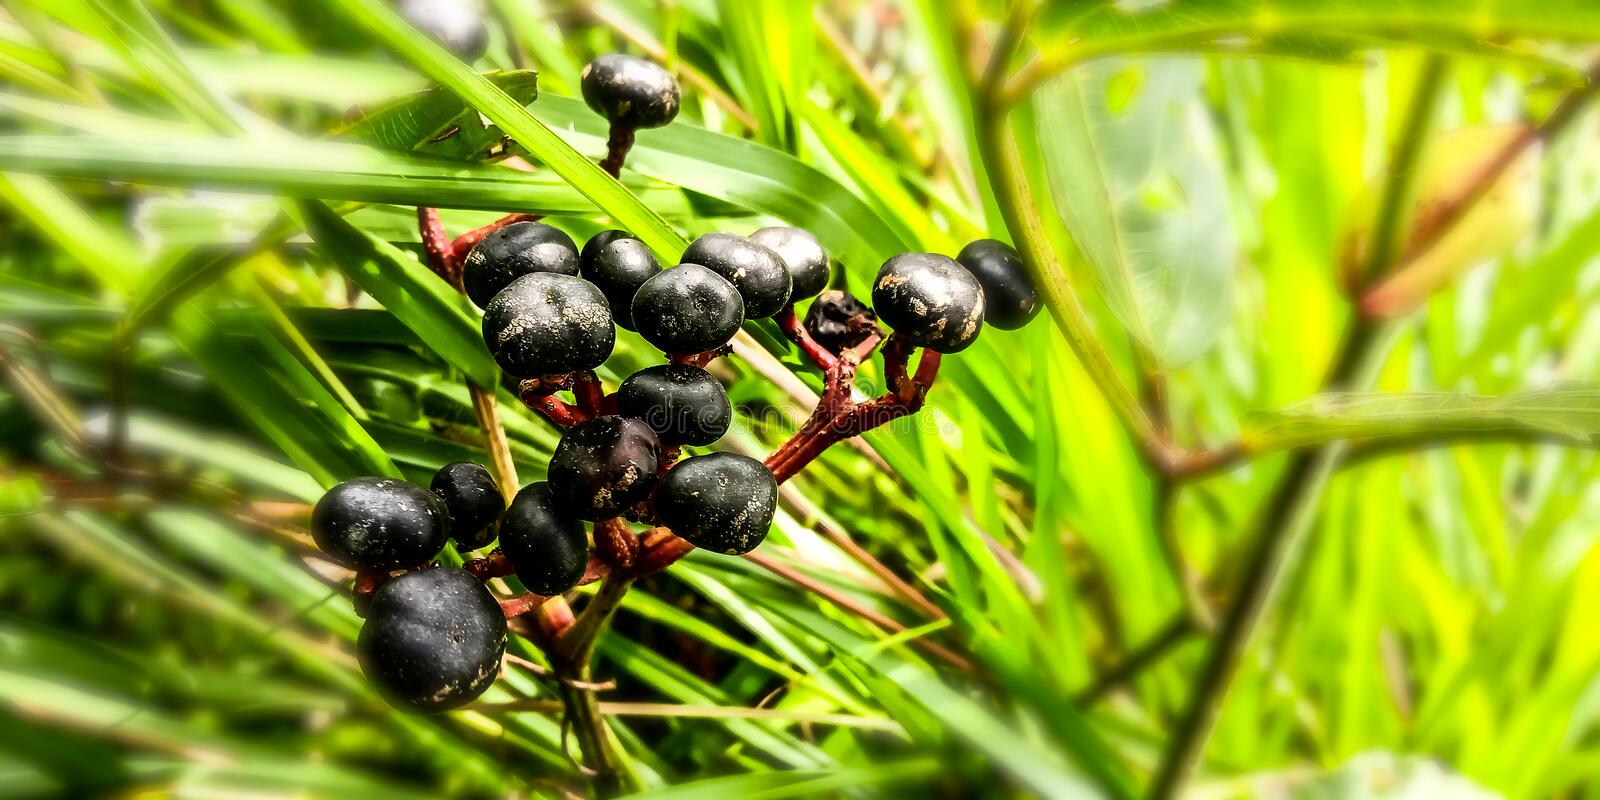 Black twins Berry in the forest. Green, natural, nature, plant, plants, plantation stock image